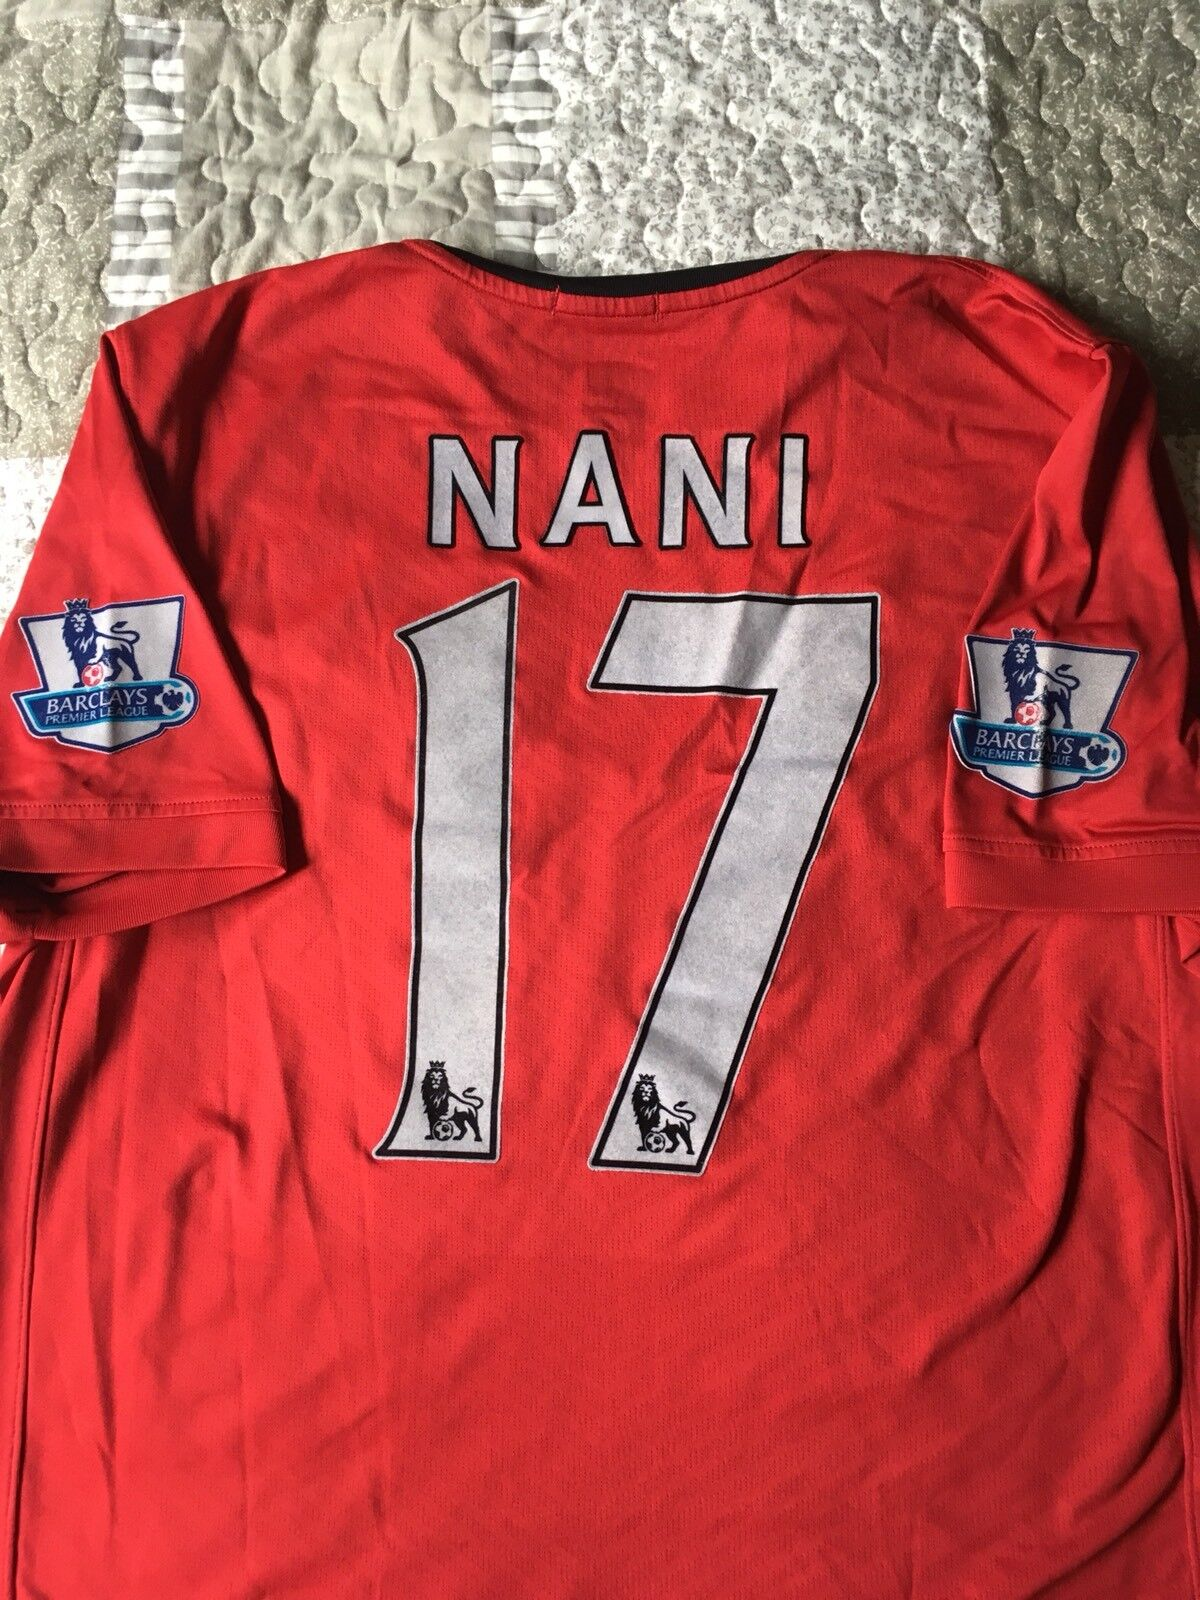 NANI 17 MANCHESTER UNITED 2009 10 MAGLIA SHIRT WORN ISSUED MATCH GAME L Ronaldo